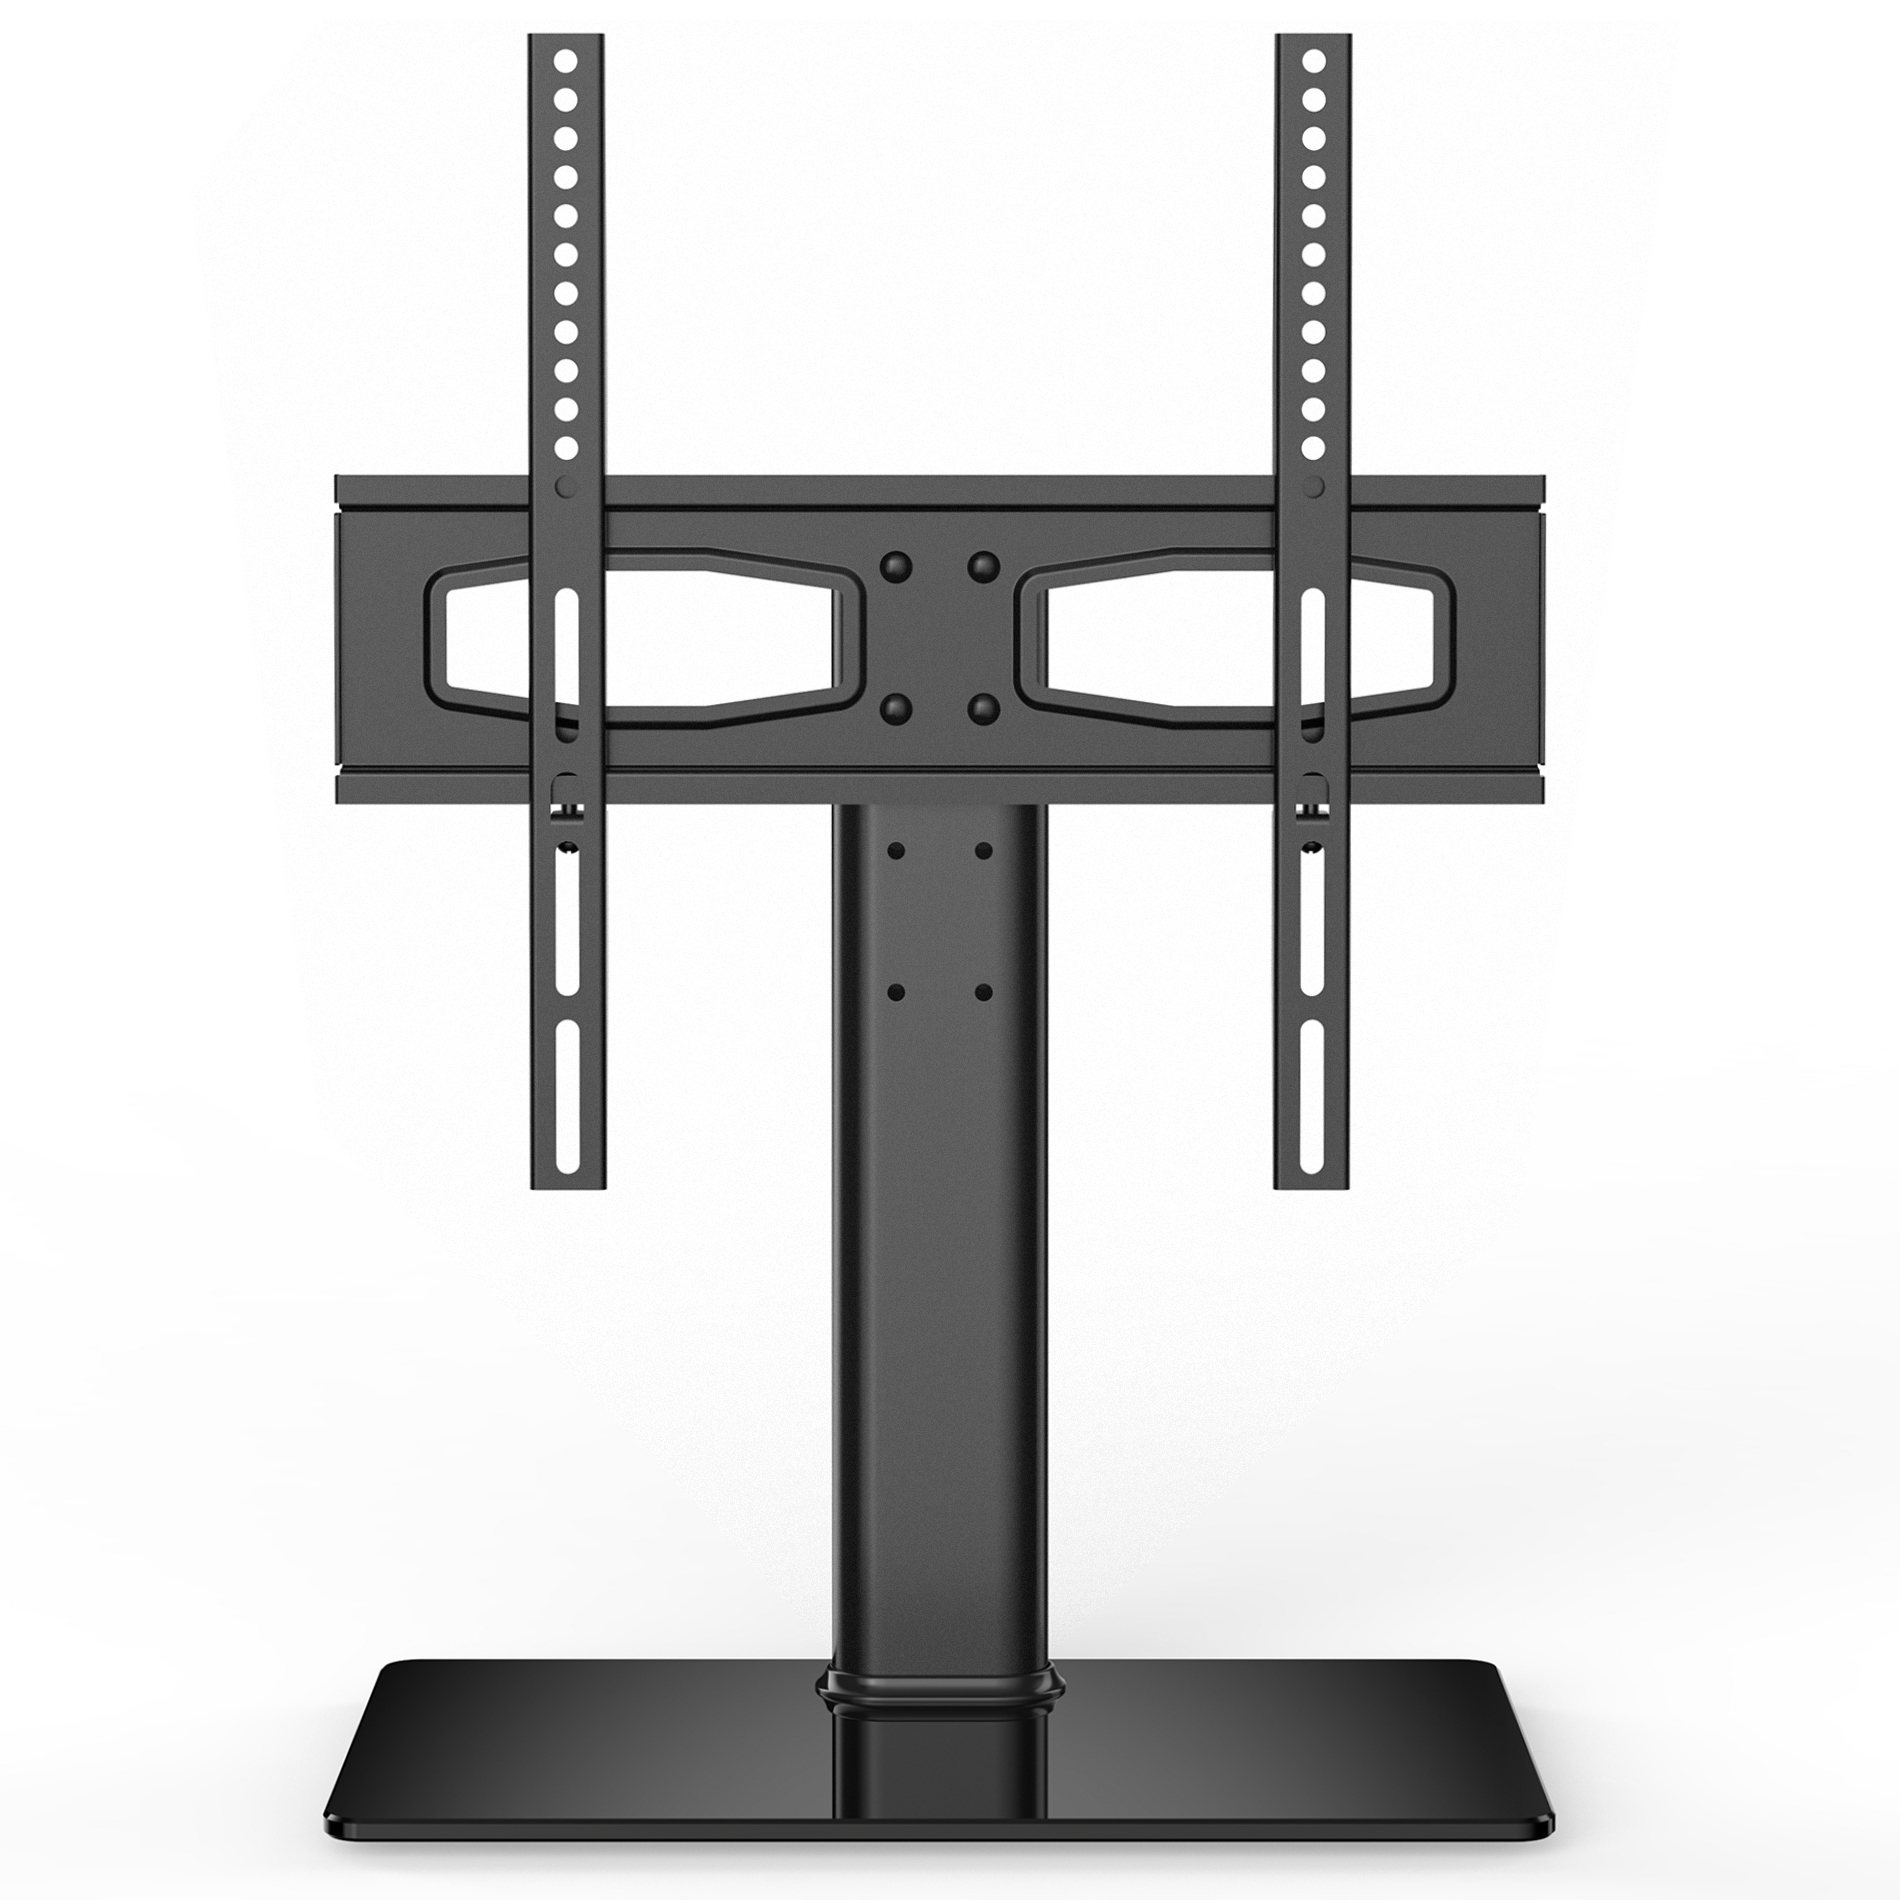 Universal Tv Stand Base Tabletop Tv Stand With Mount Up To 55in Flat Screen Tv Tt104201gb Tv Stand With Mount Universal Tv Stand Tabletop Tv Stand